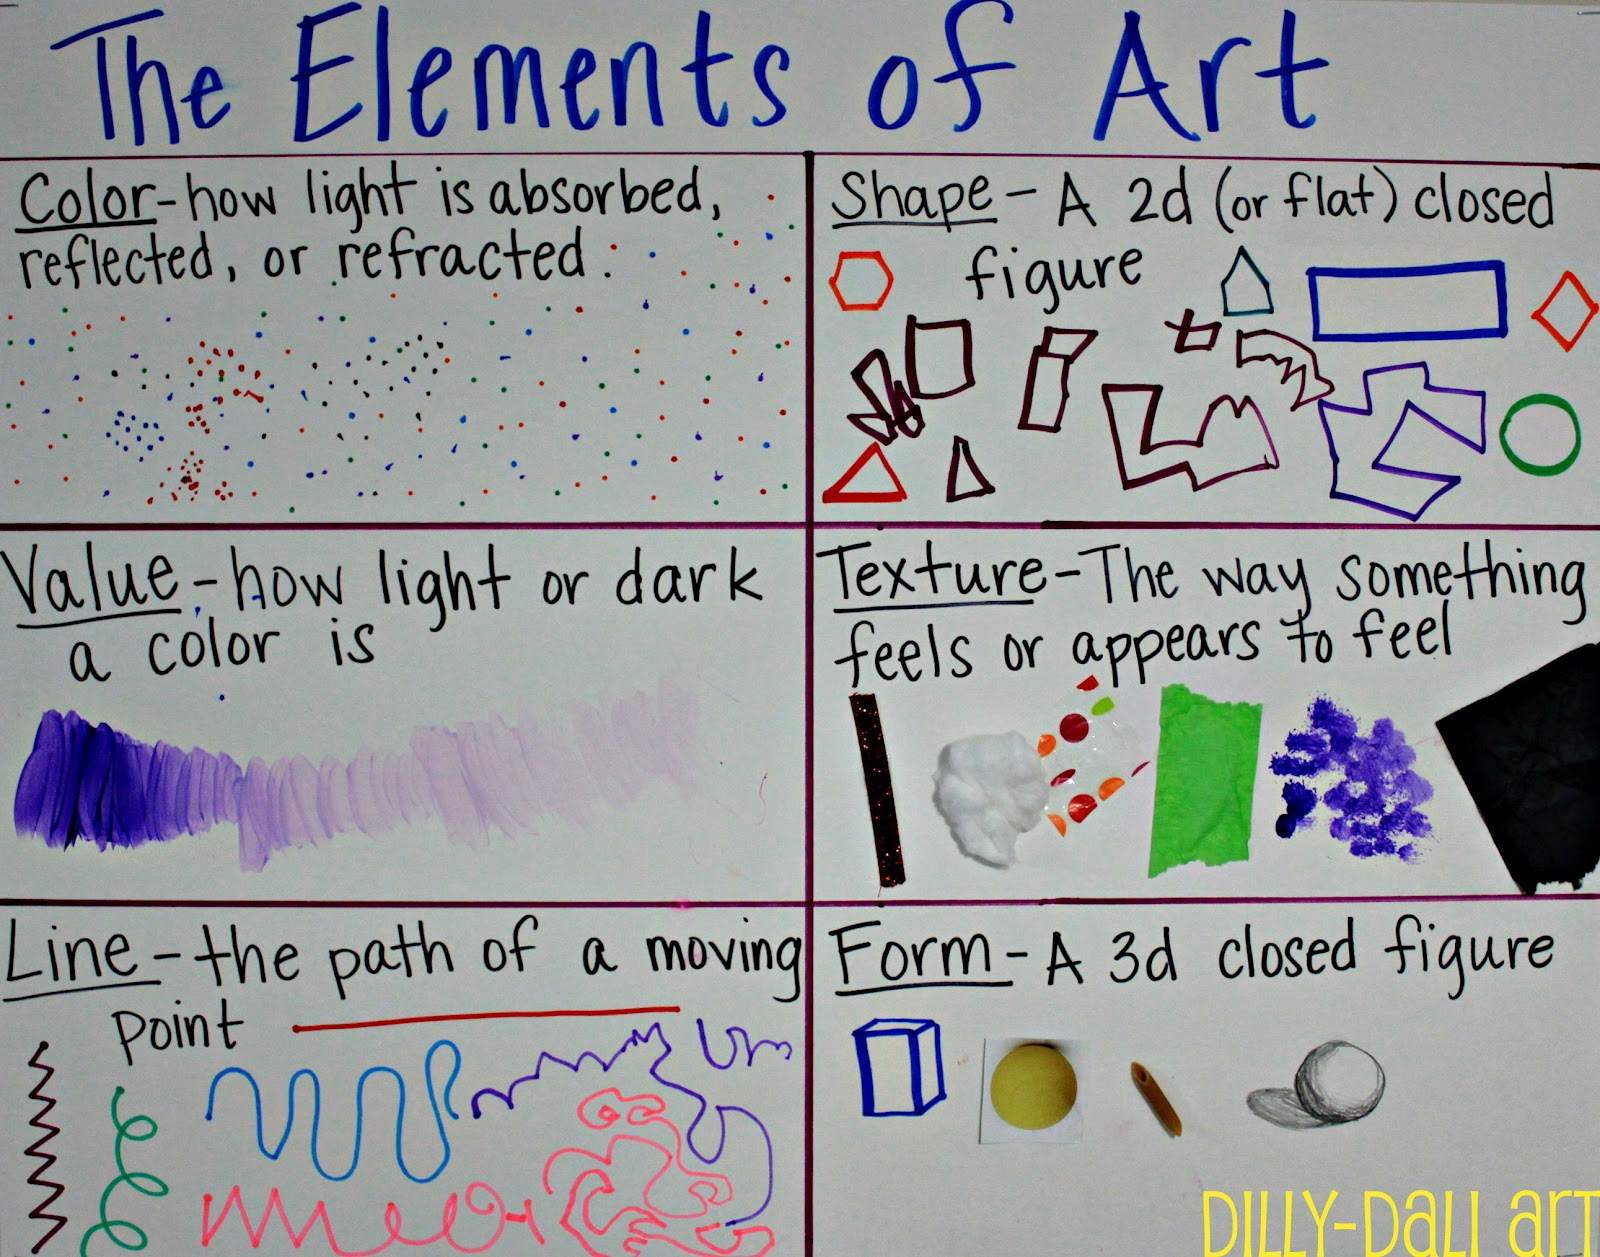 6 Elements Of Art : Dilly dali art elements of poster